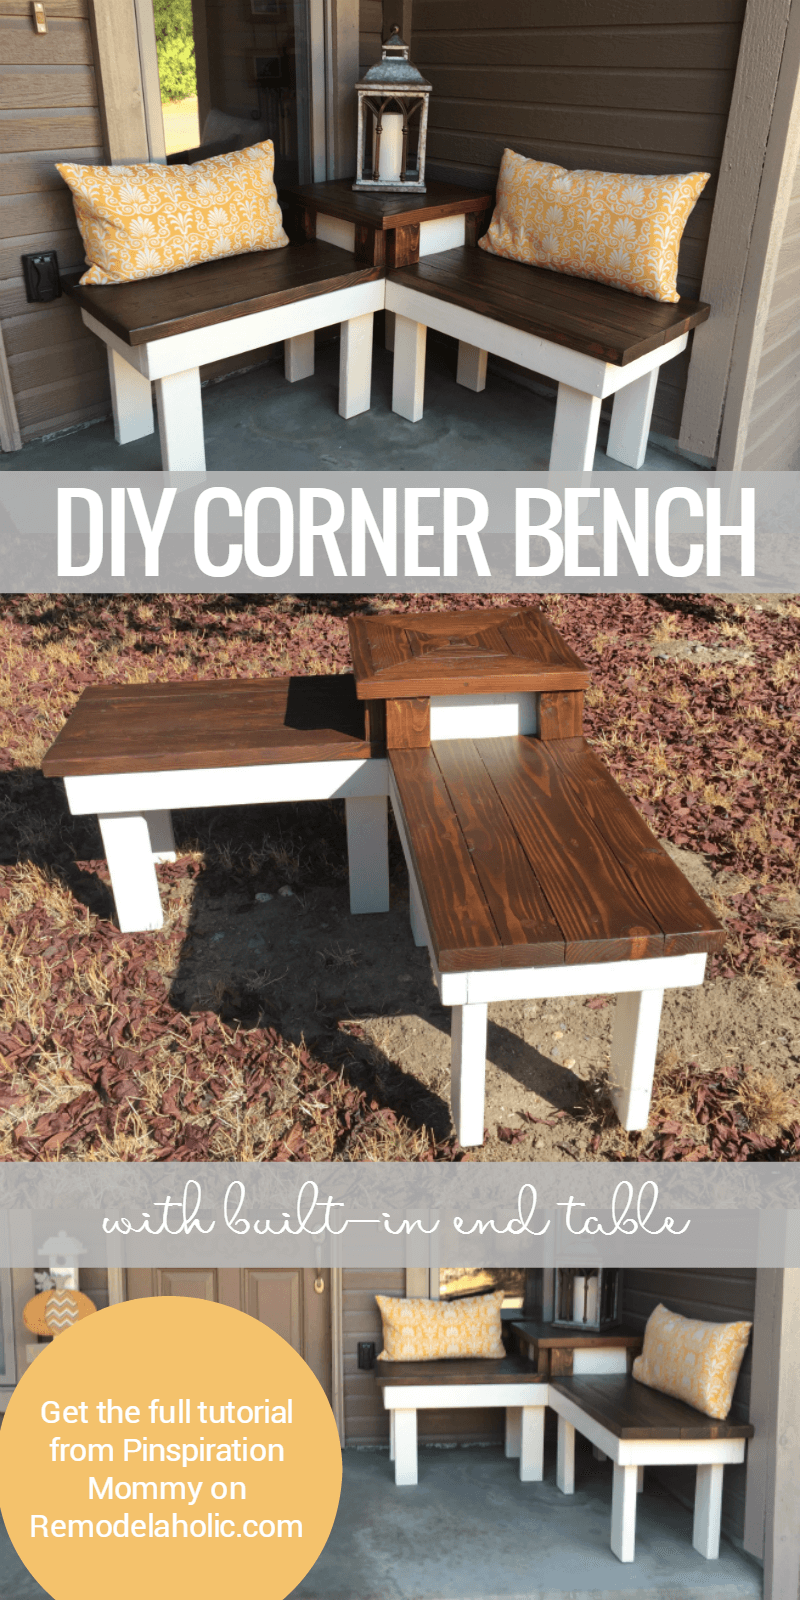 Build Your Own Perfect Corner Bench